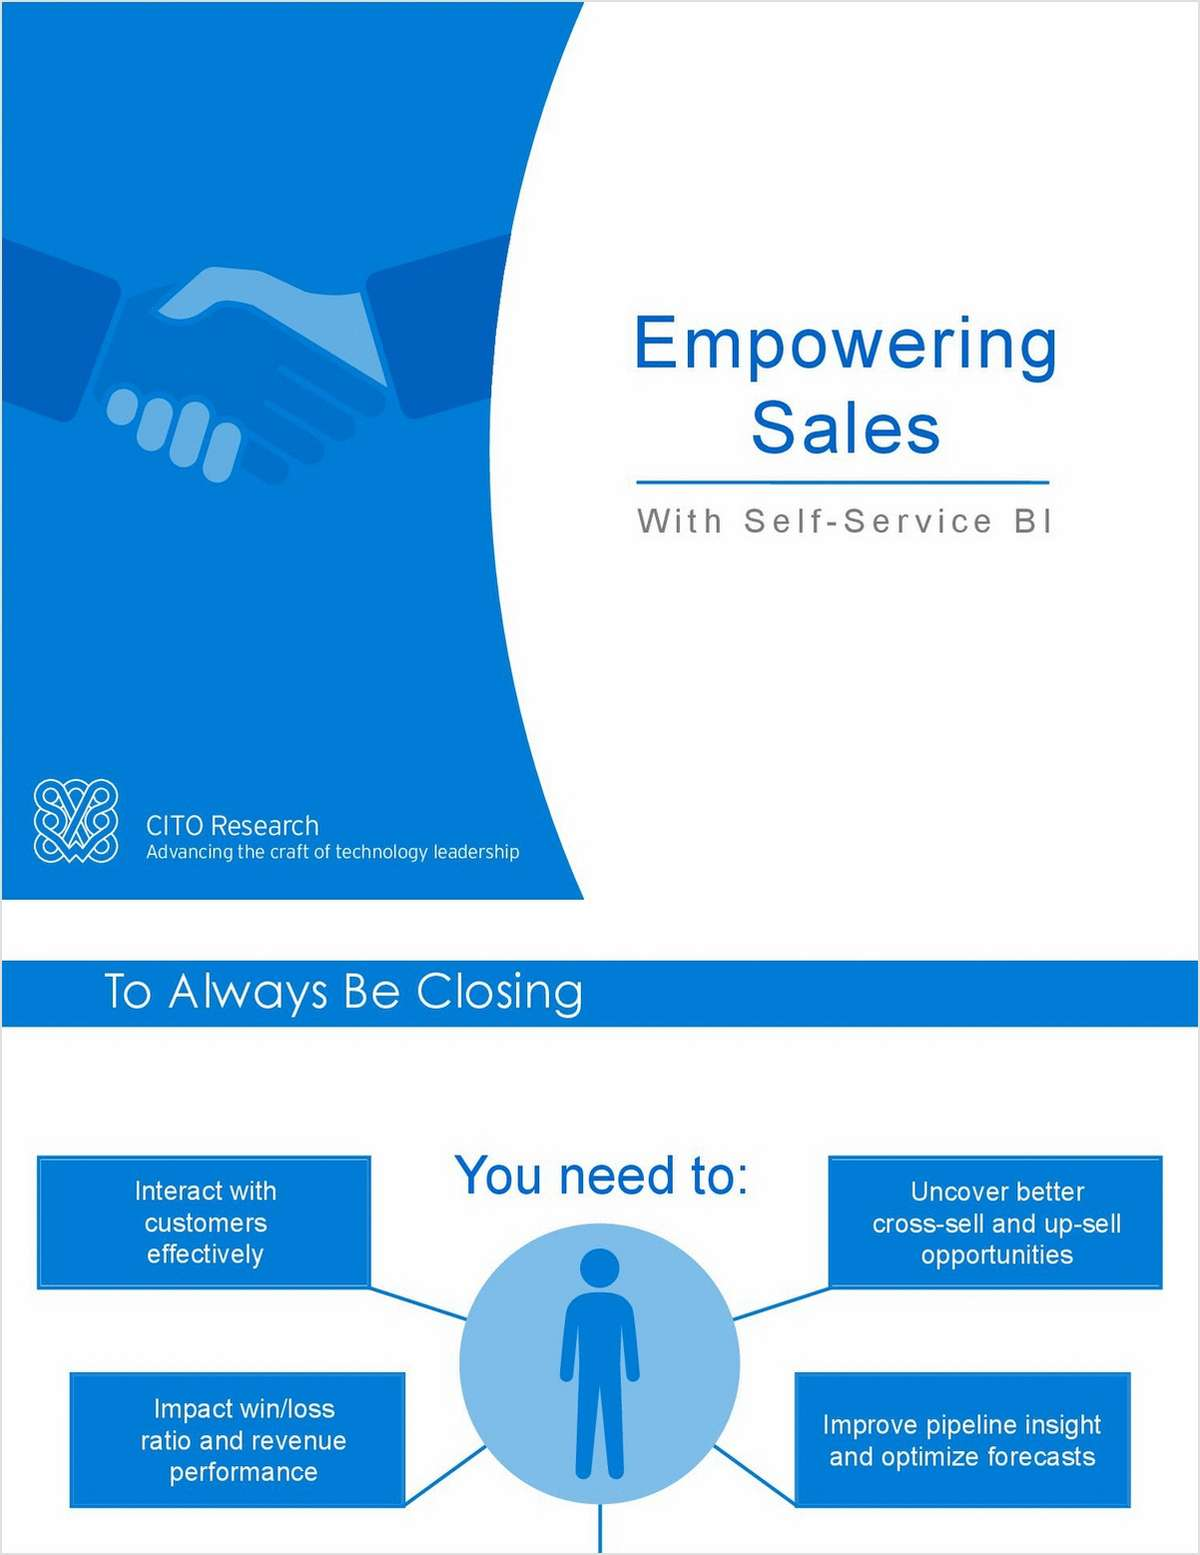 Empowering Sales with Self-Service BI